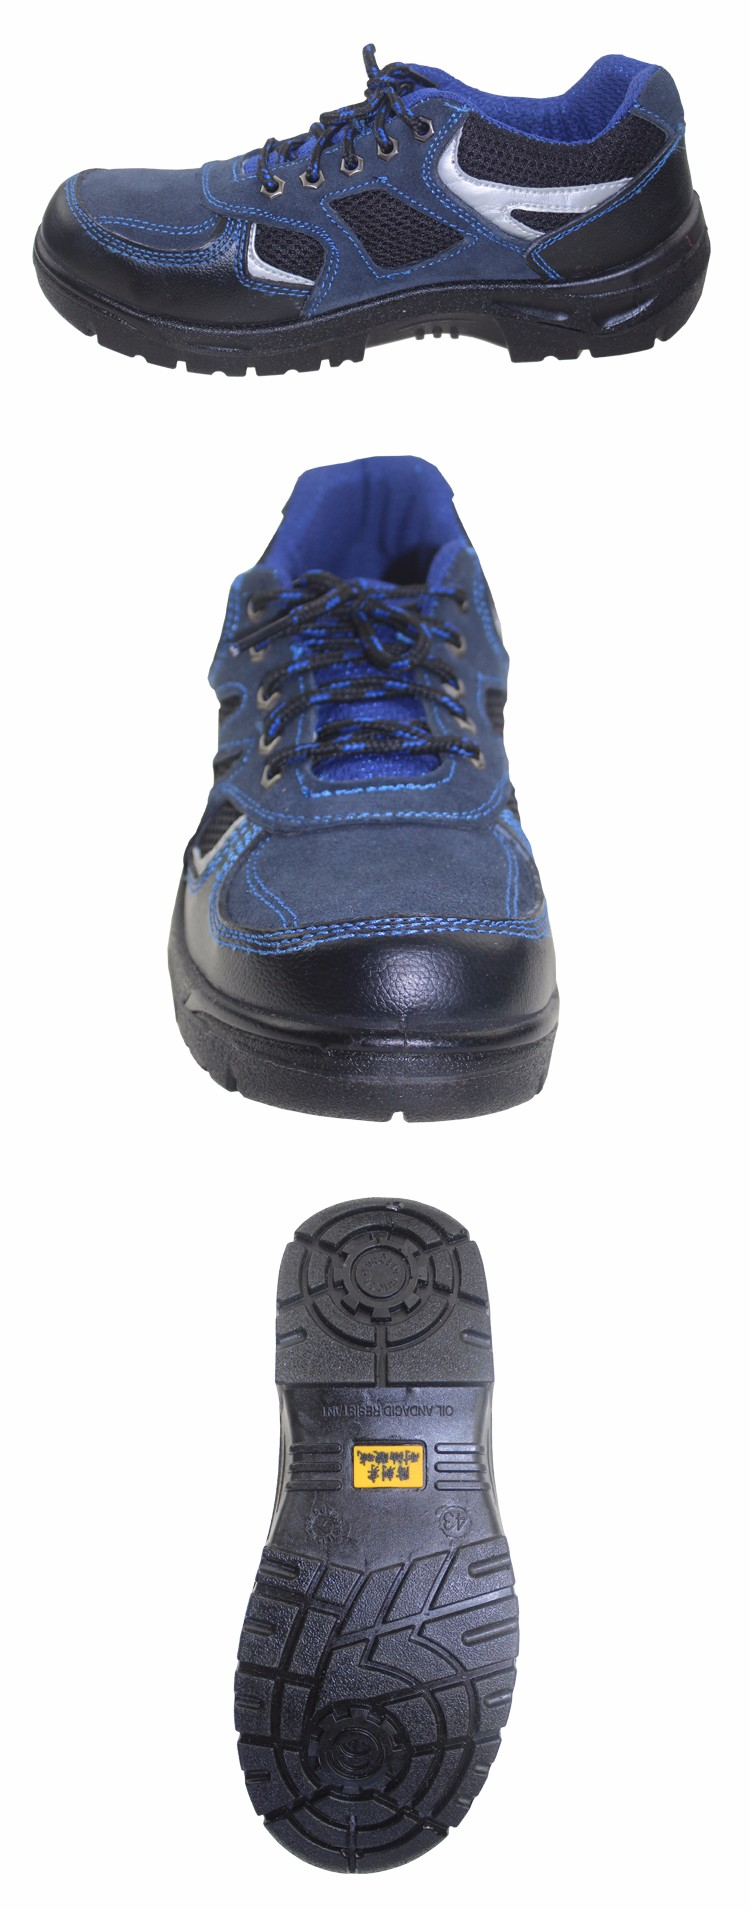 free sample steel toe industrial safety shoes for engineers. Resume Example. Resume CV Cover Letter